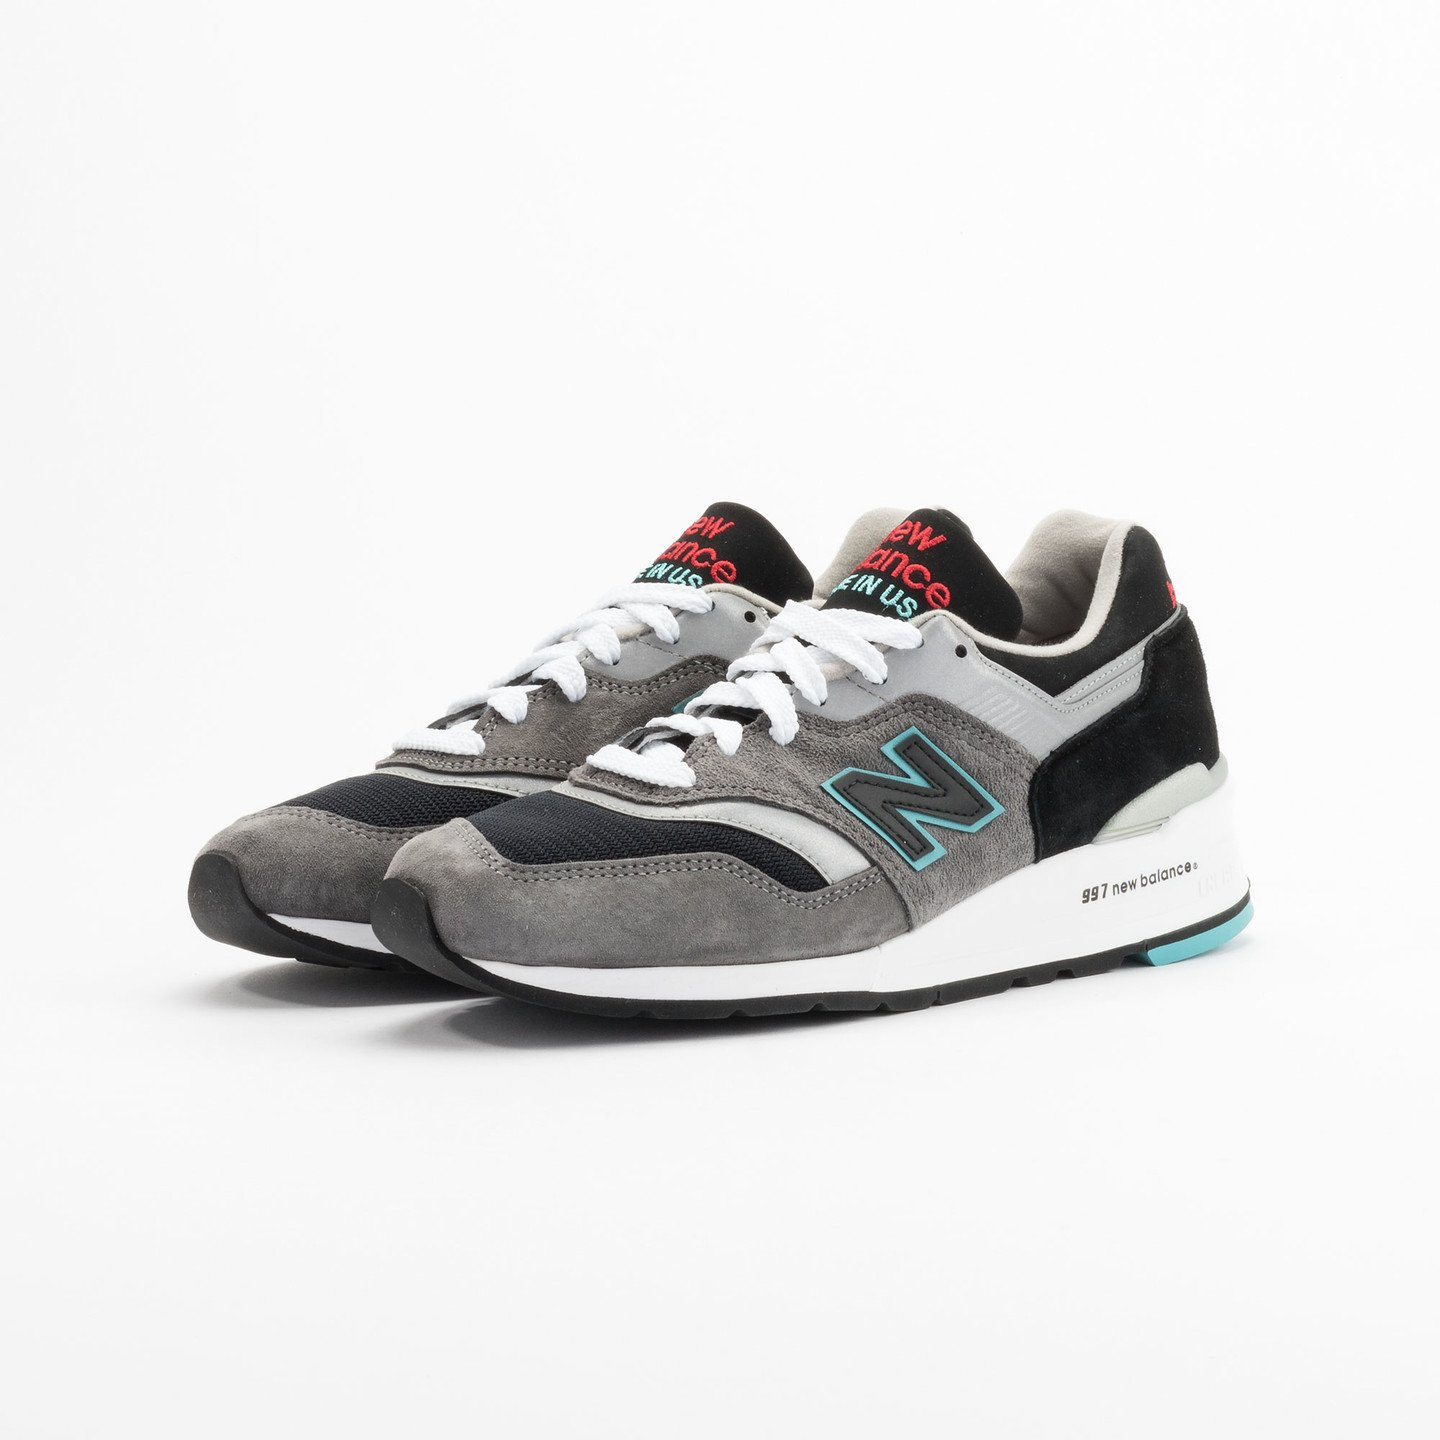 New Balance M997 Made in USA Grey / Black / Mint M997CGB-41.5